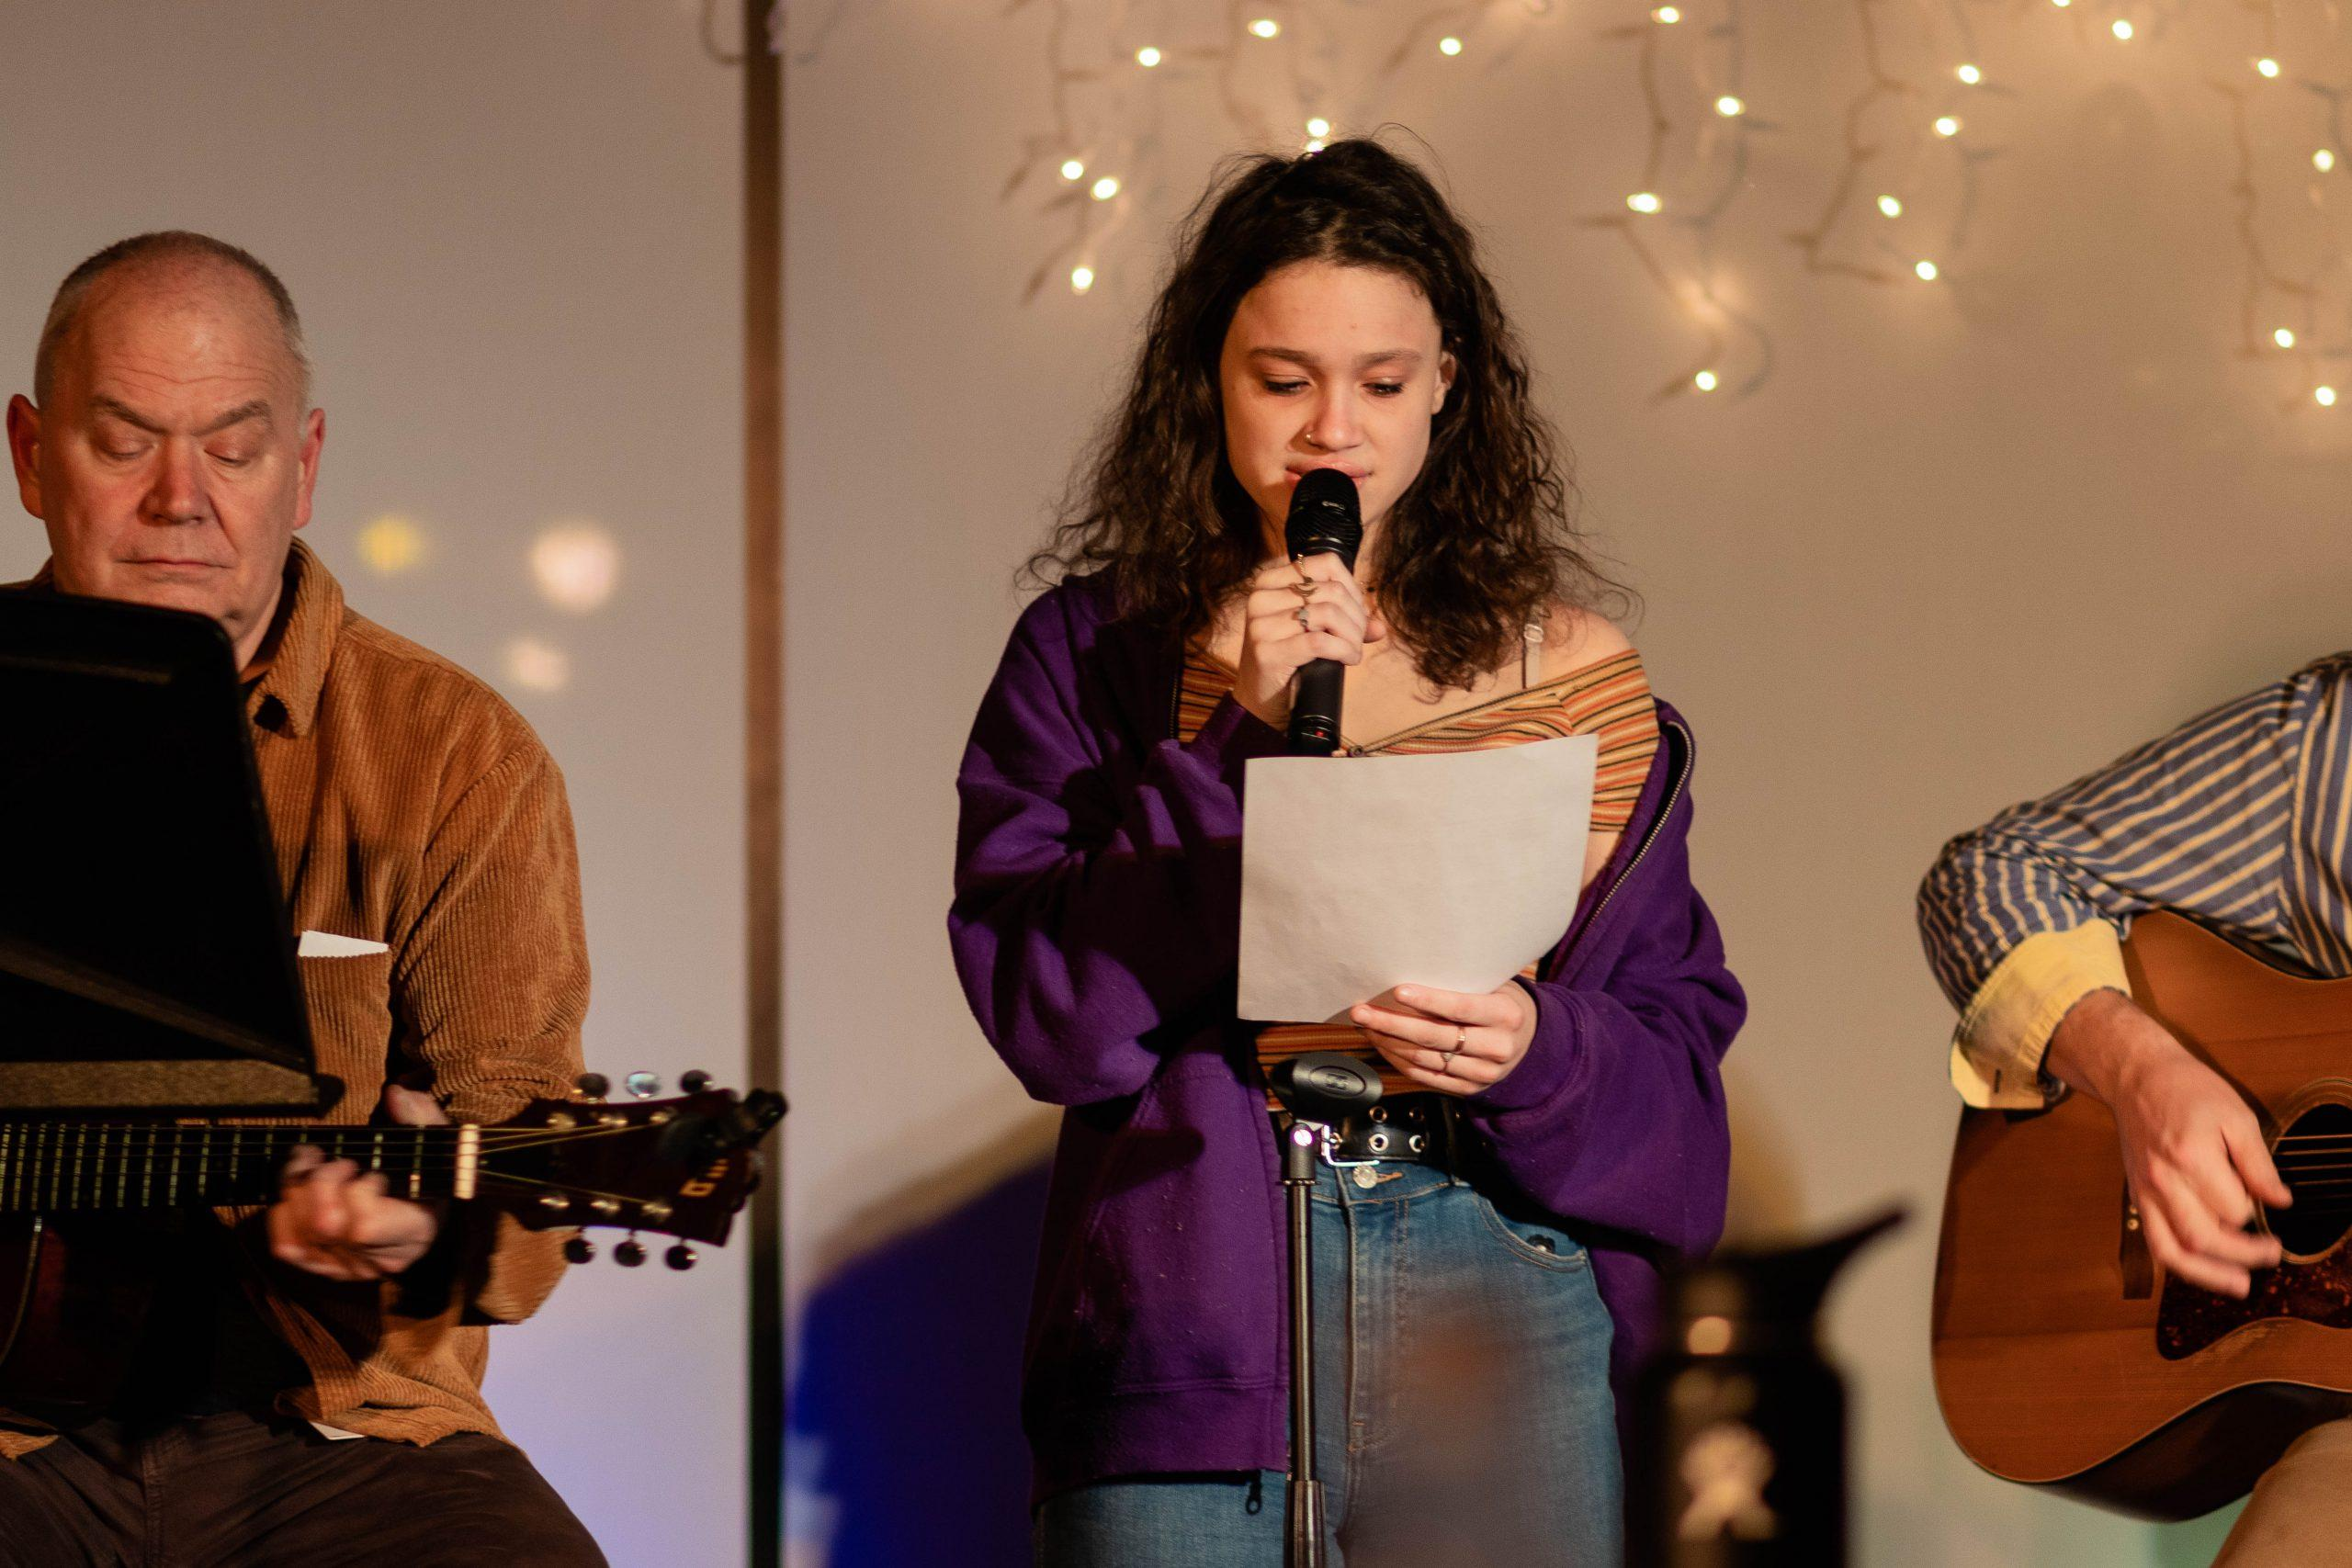 Alumni%2C+students%2C+and+faculty+gathered+to+share+music+and+poetry.